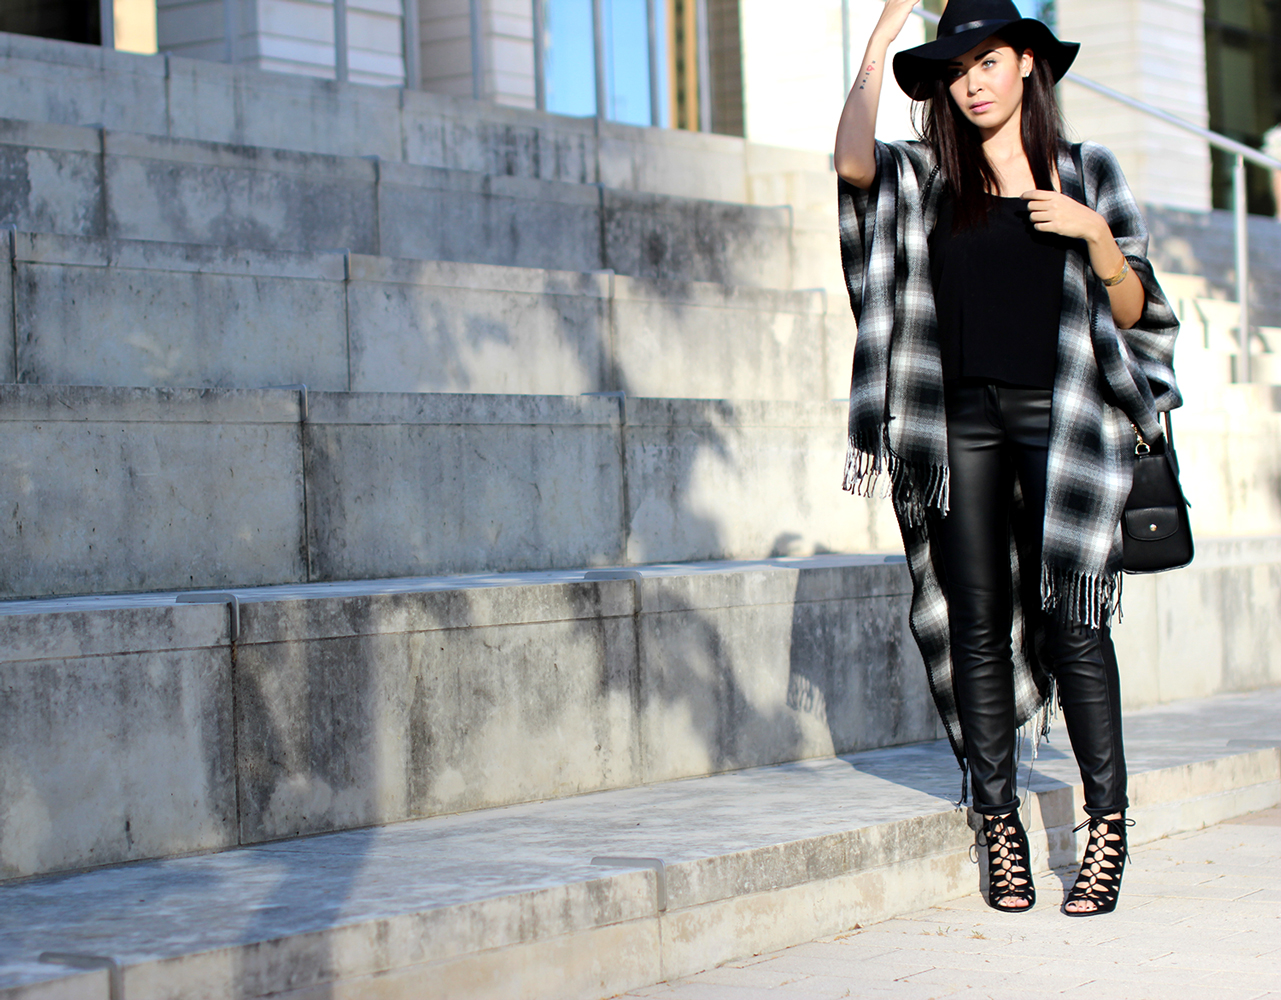 FIXIN-TO-THRILL-OVERSIZED-SCARF-CHECK-LEATHER-BLACK-NOVEMBER-ATX-AUSTIN-STYLE-BLOG-FW15-TRENDY-CHIC-GLAM-TEXAS-8